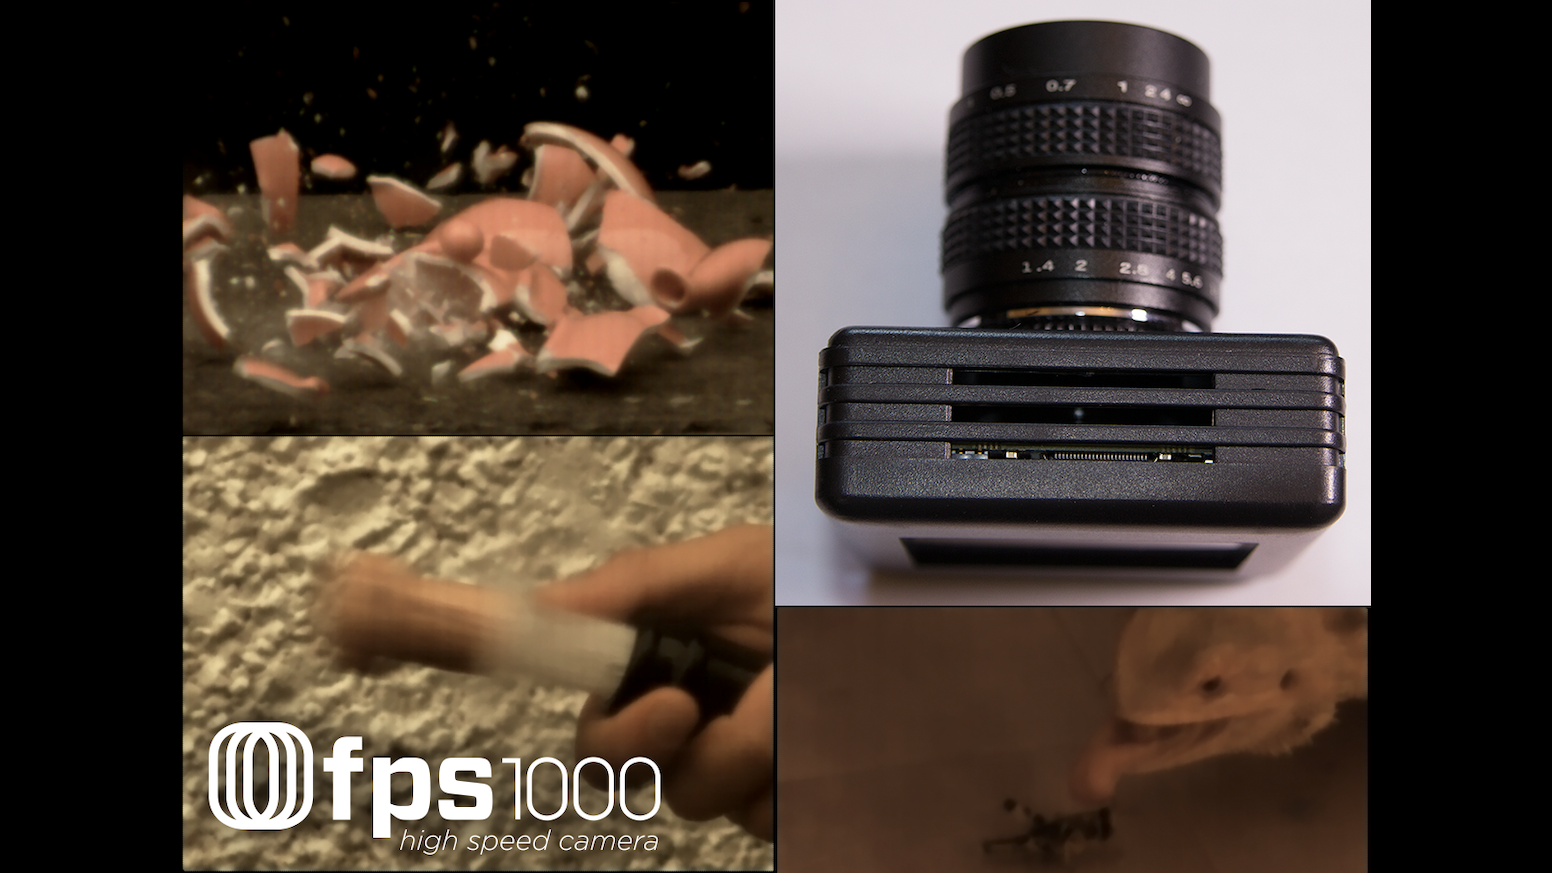 this high frame rate camera takes from 840 to over 10000 frames per second to produce